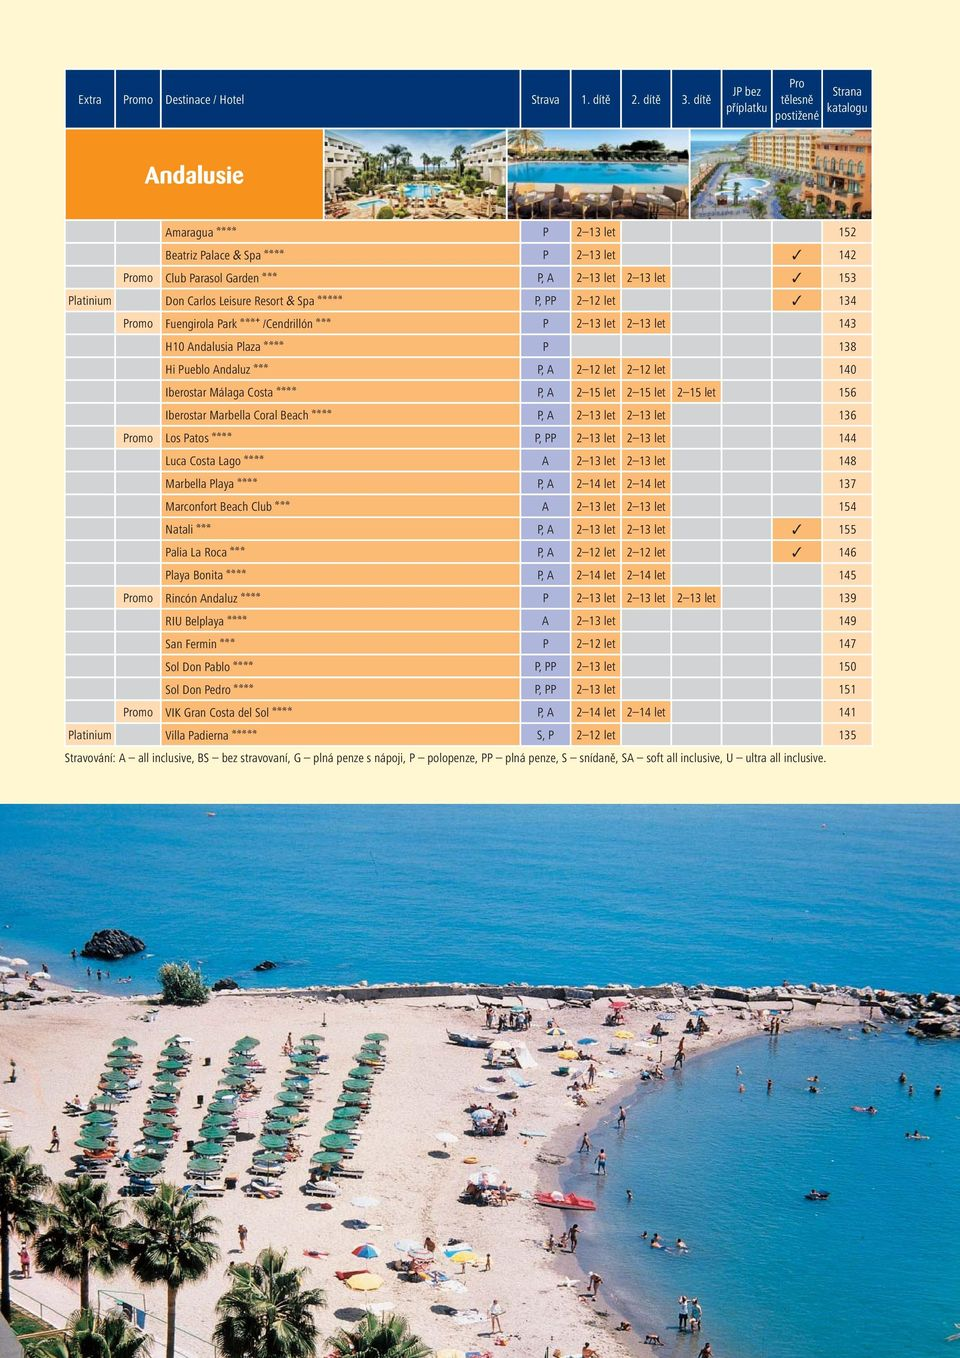 Platinium Don Carlos Leisure Resort & Spa aaaaa P, PP 2 12 let 134 Promo Fuengirola Park aaab /Cendrillón aaa P 2 13 let 2 13 let 143 H10 Andalusia Plaza aaaa P 138 Hi Pueblo Andaluz aaa P, A 2 12